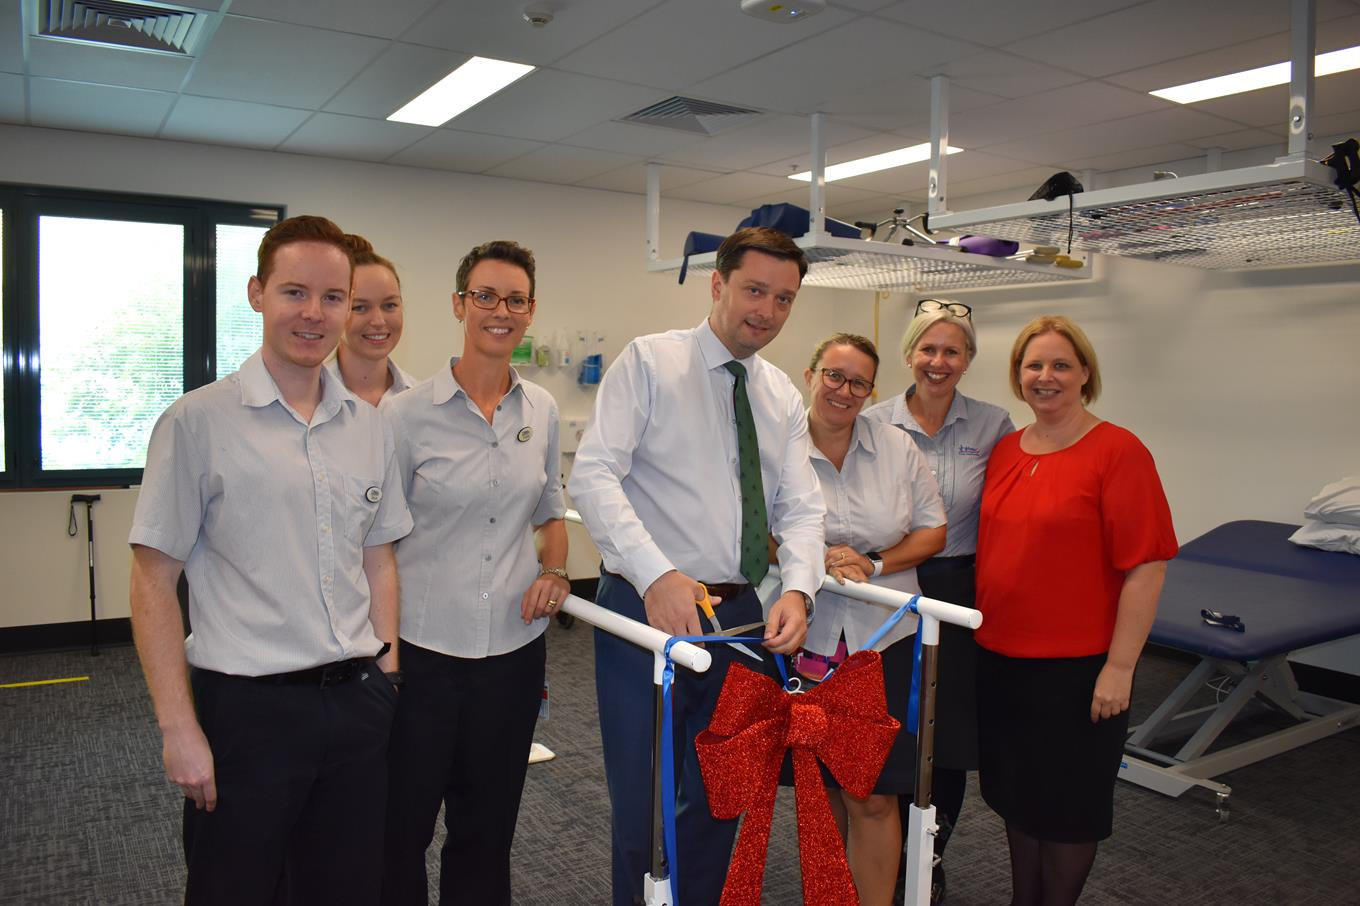 https://www.materonline.org.au/whats-on/news/february-2019/new-rehab-gym-opens-at-redland